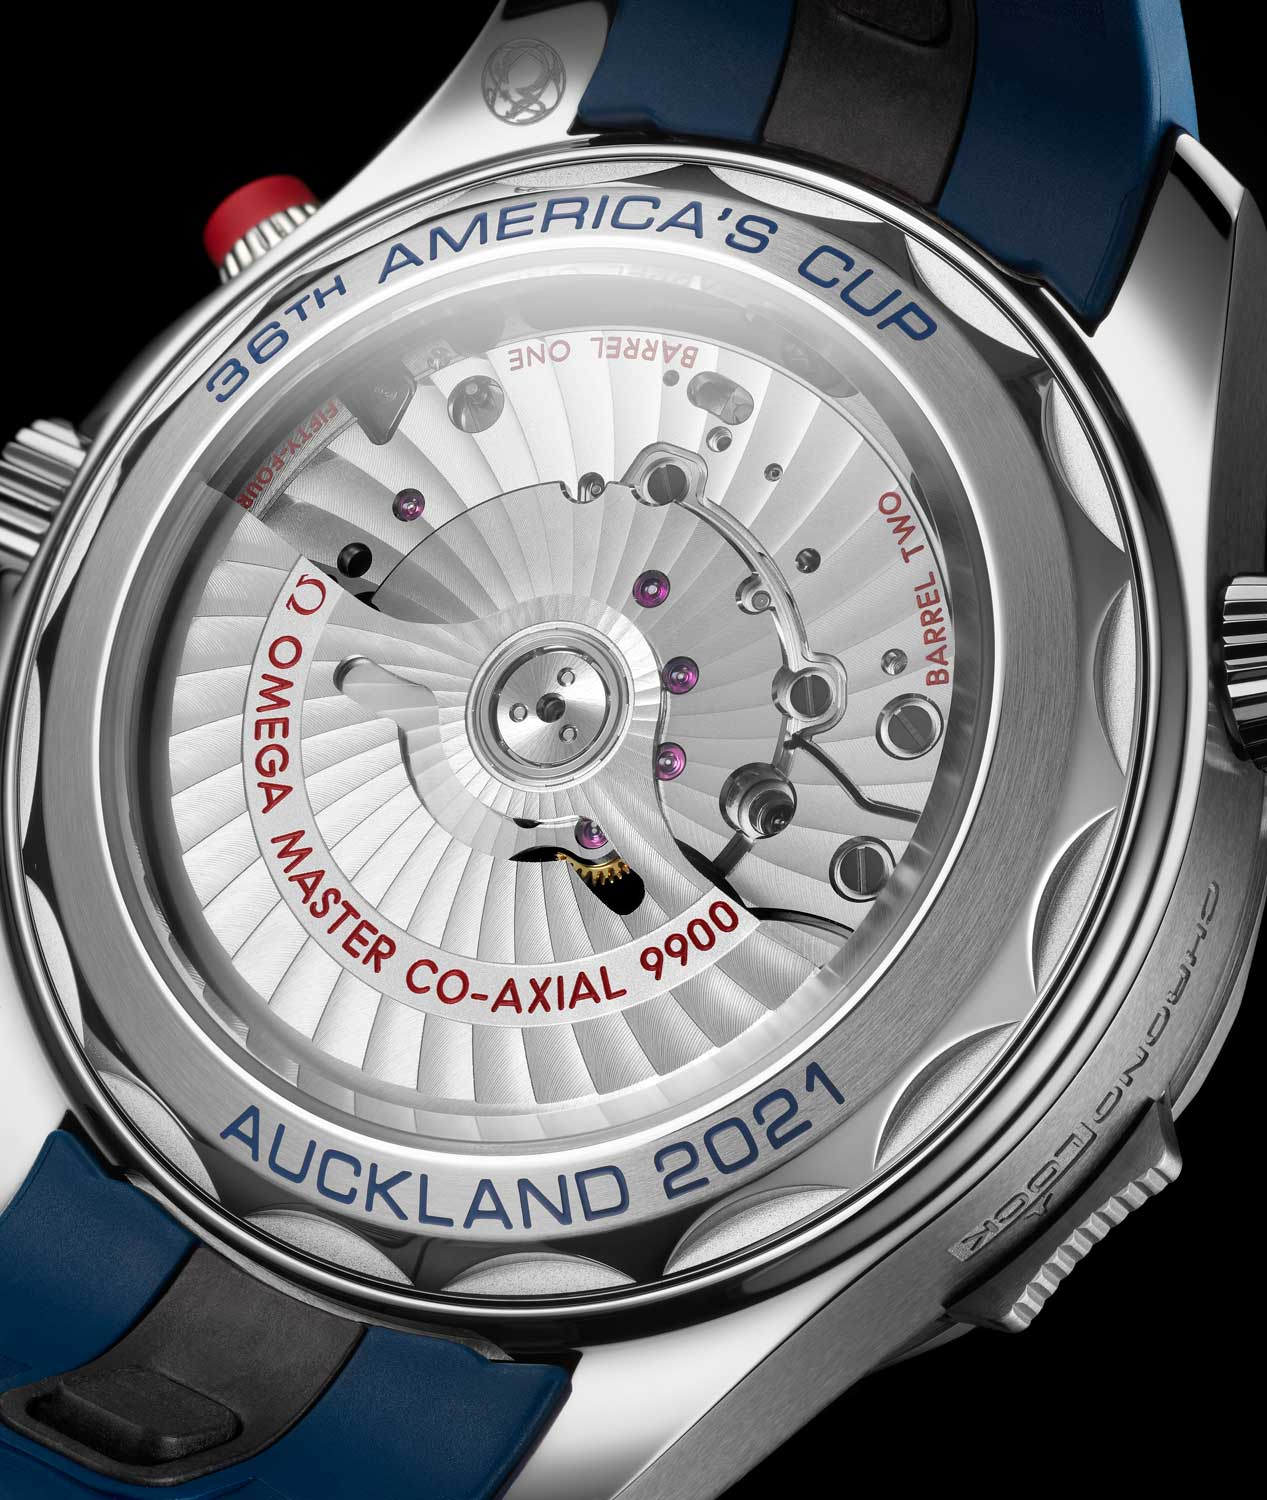 The sapphire caseback offers a fabulous view of the in-house Calibre 9900 automatic chronograph with Arabesque stripes.